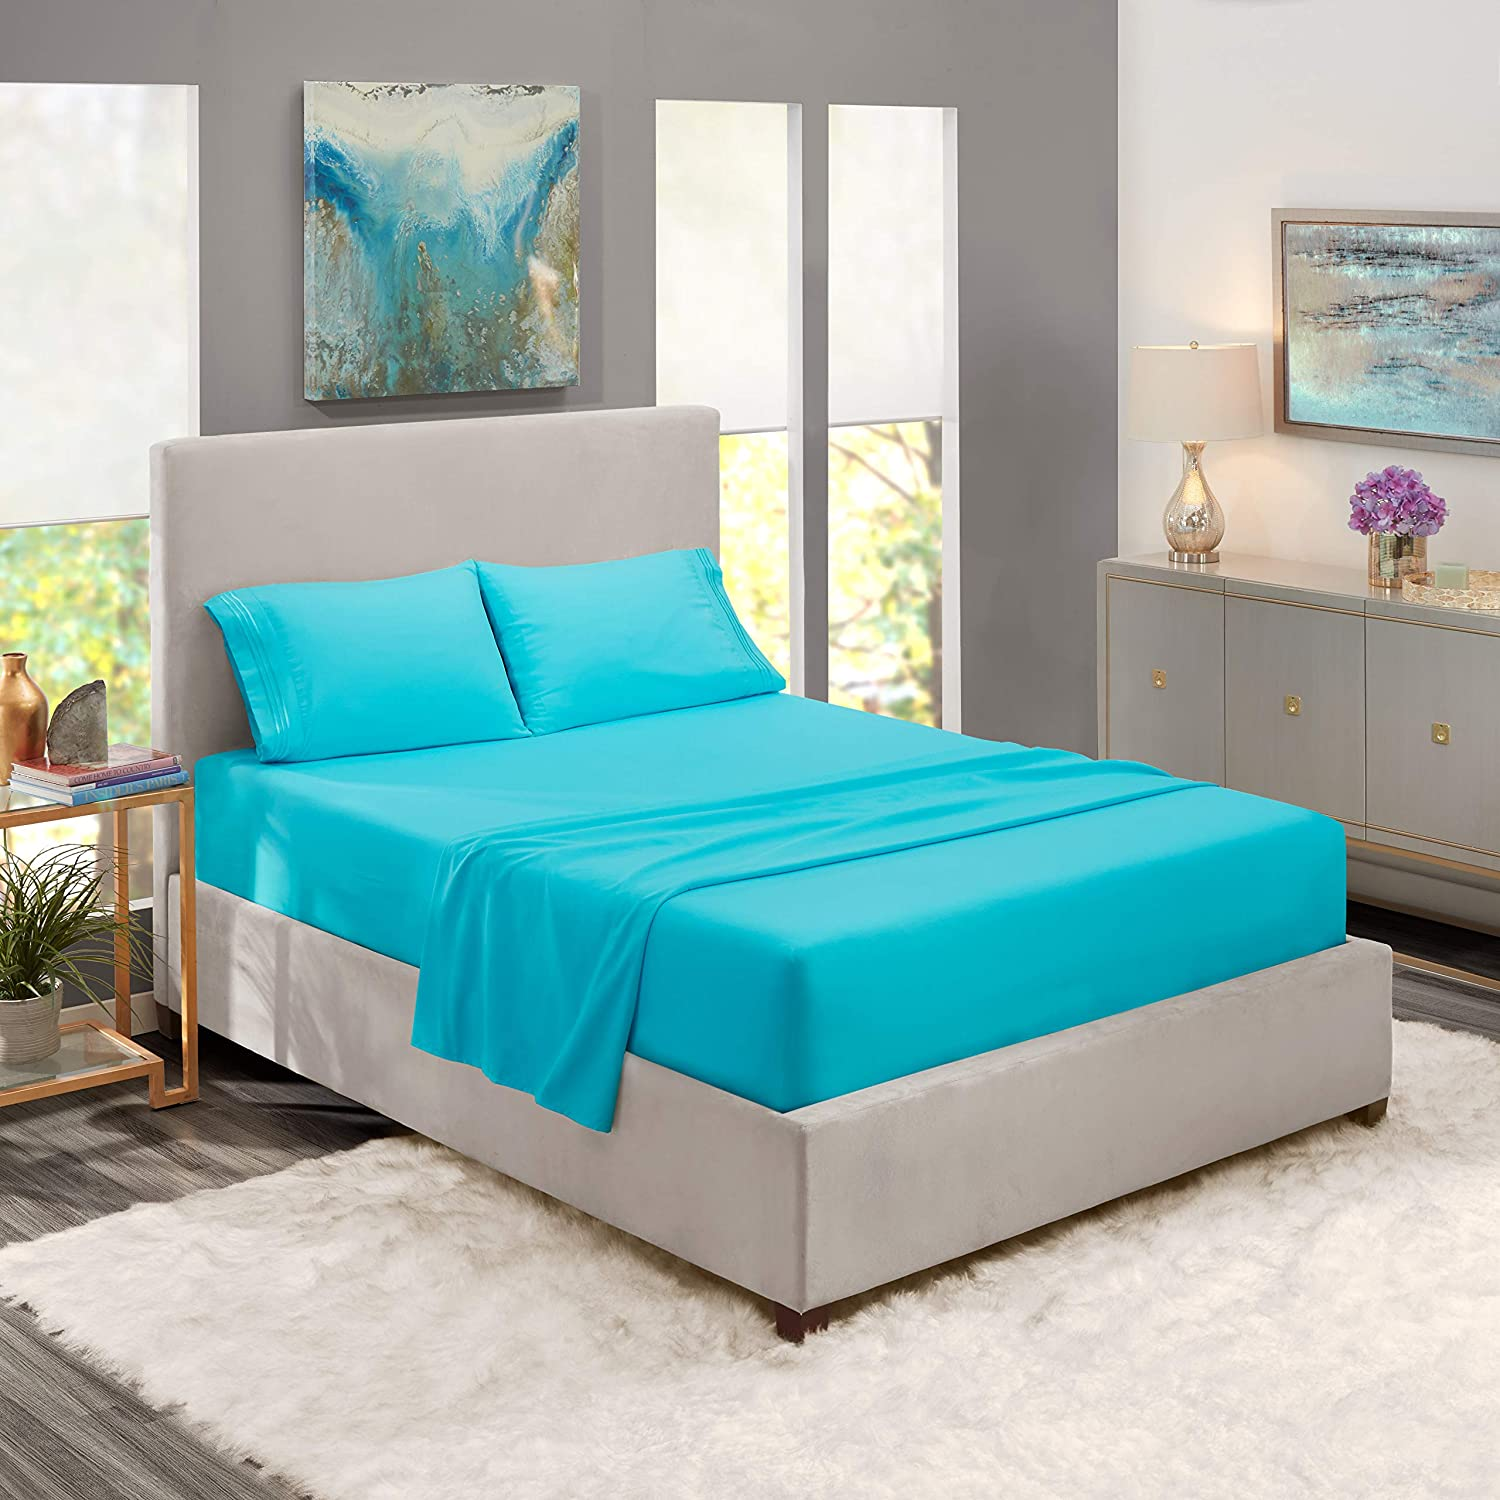 Bed Sheets, Queen, Beach Blue - Best Quality Bedding Set Sheets on Amazon, 4-Piece Bed Set, Deep Pockets Fitted Sheet, 100% Luxury Soft Microfiber - Hypoallergenic, Cool & Breathable